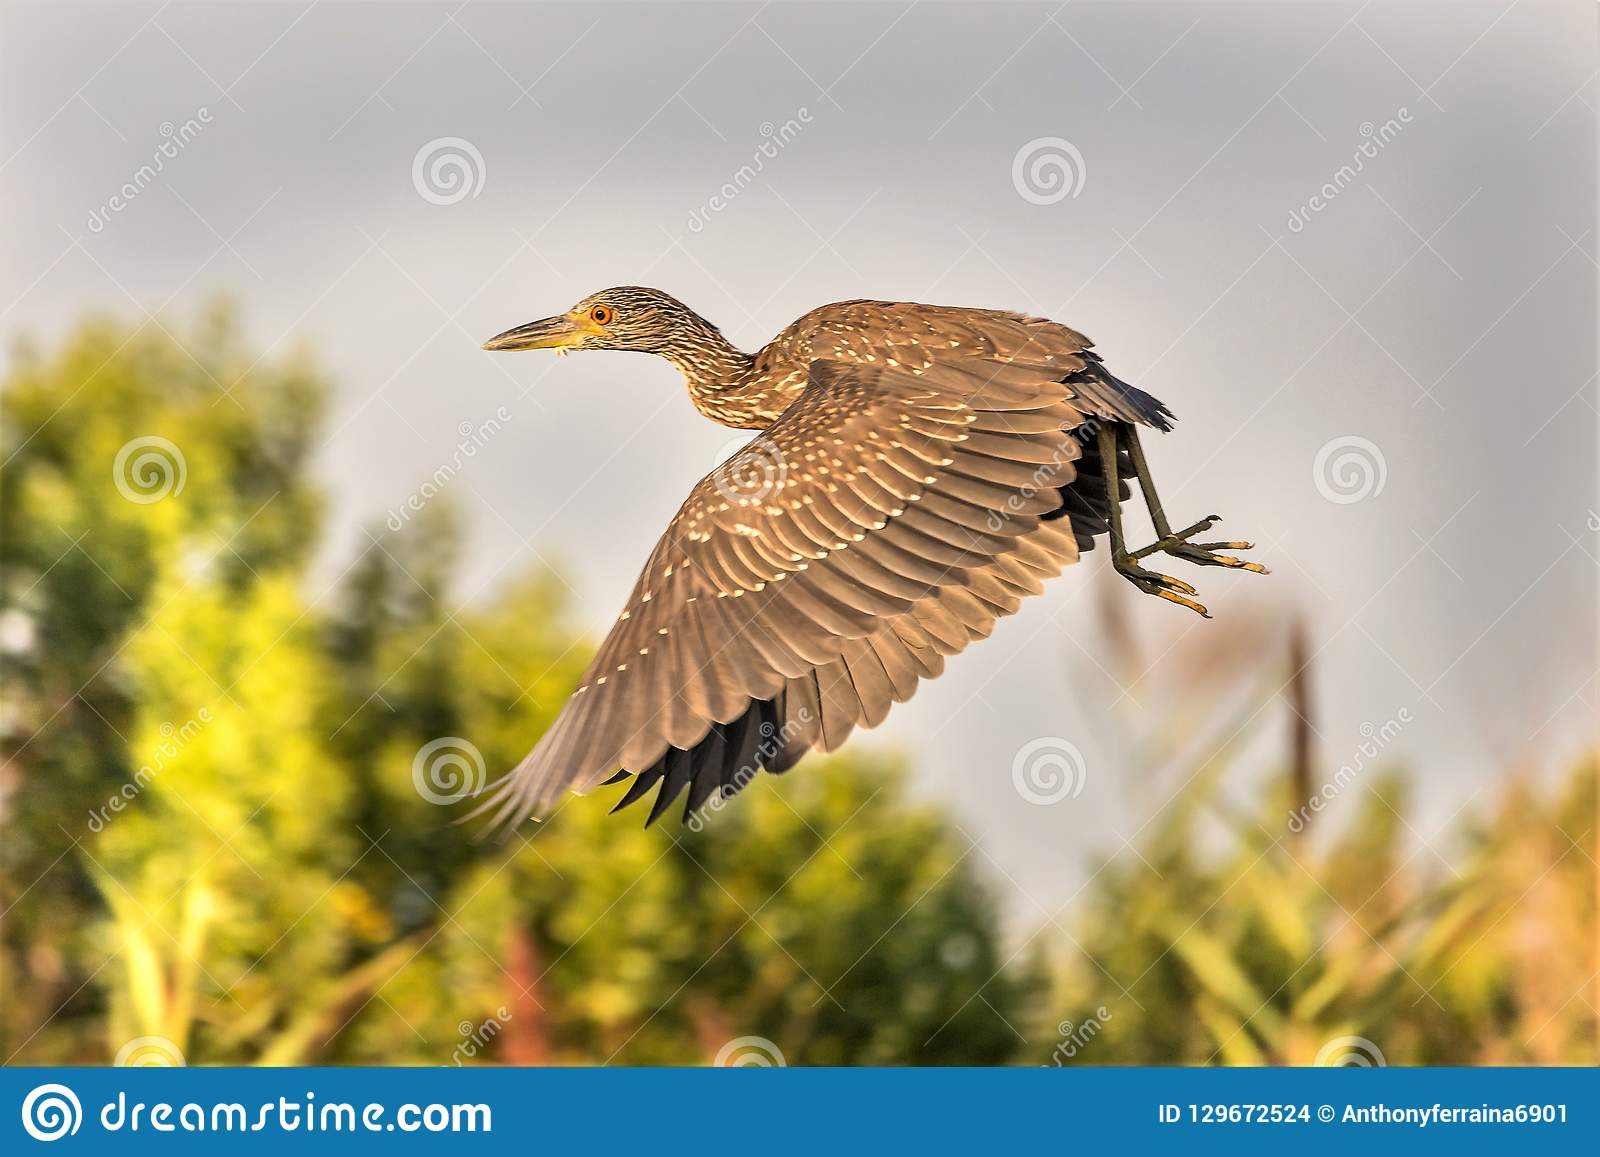 The Flight of the Yellow Crowned Night Heron